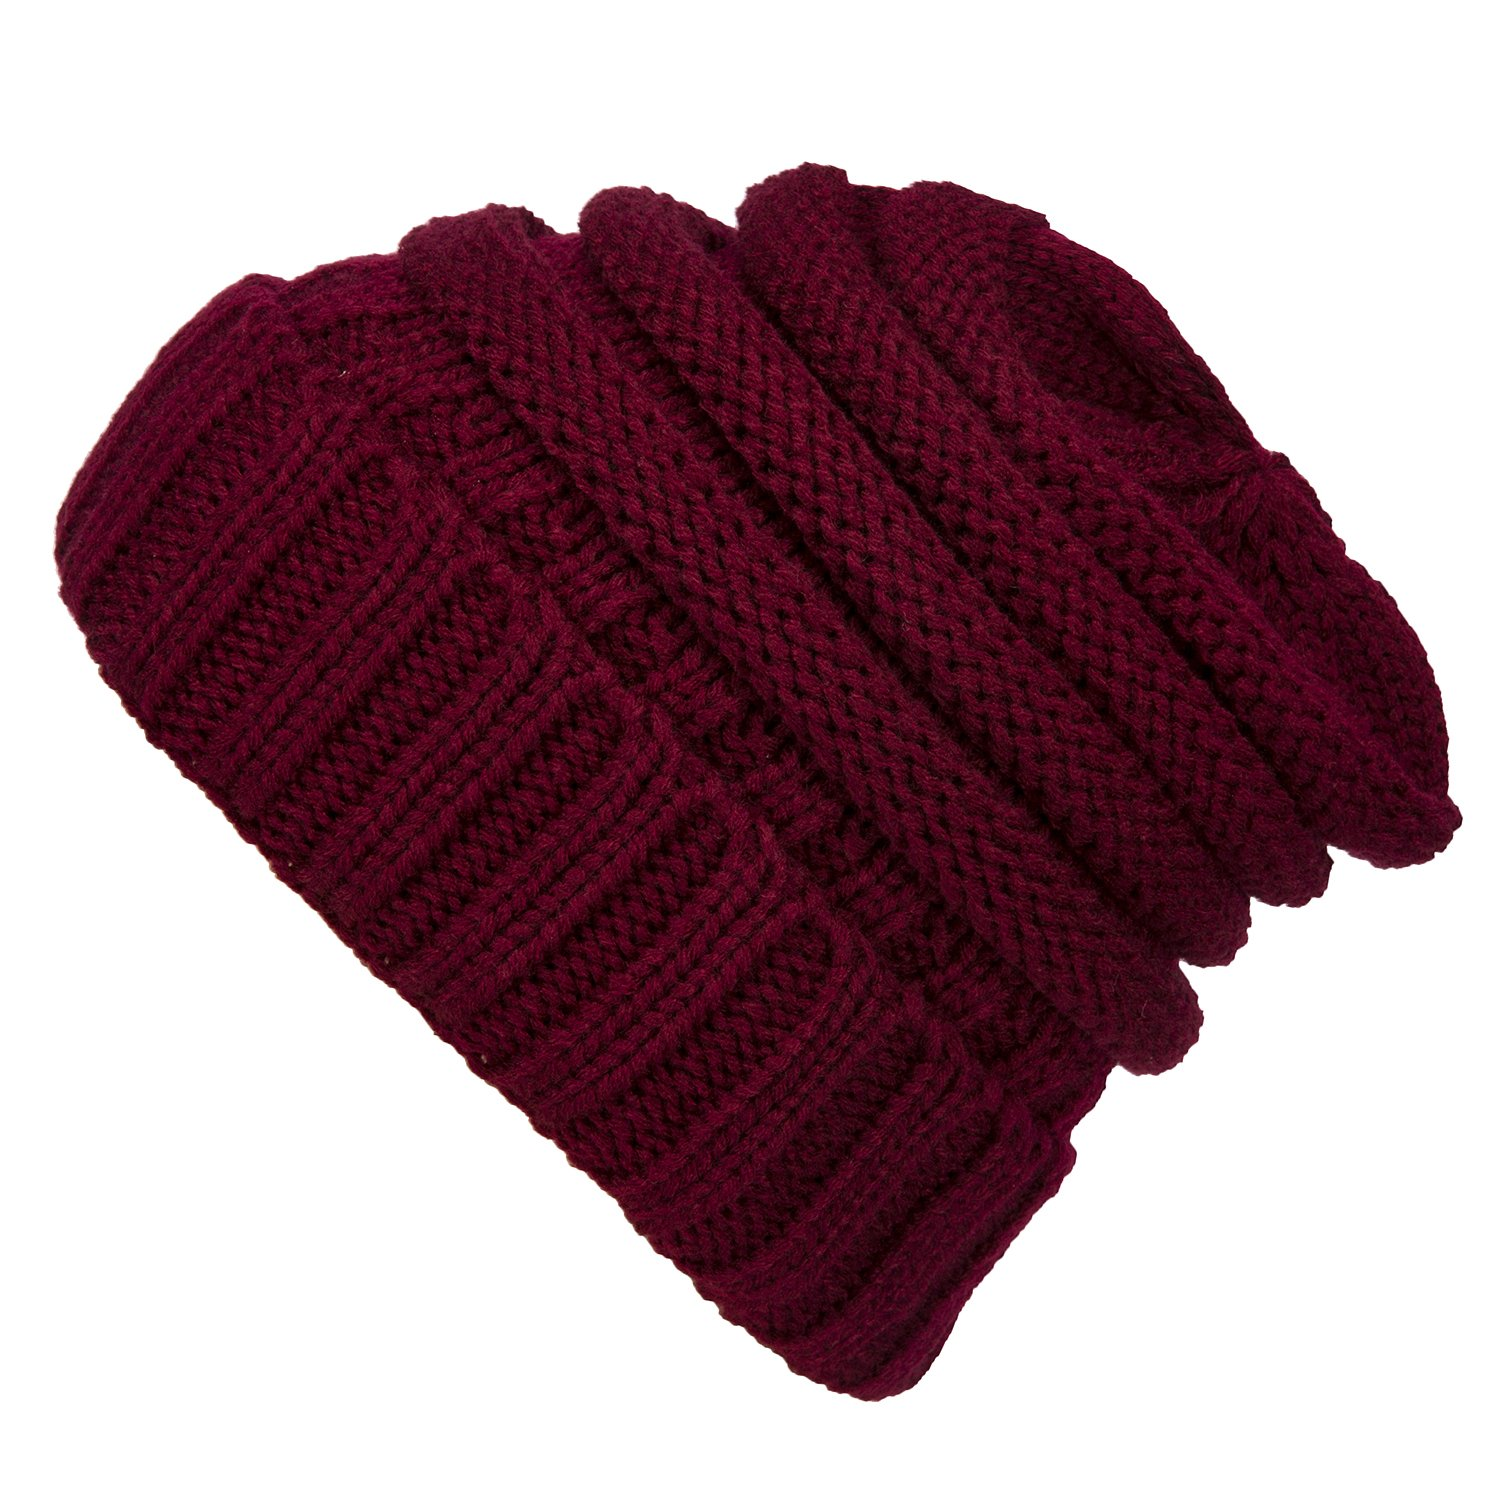 WINCAN Stretch Cable Slouchy Beanie Hat Trendy Warm Chunky Soft Knit Cap (Wine red)